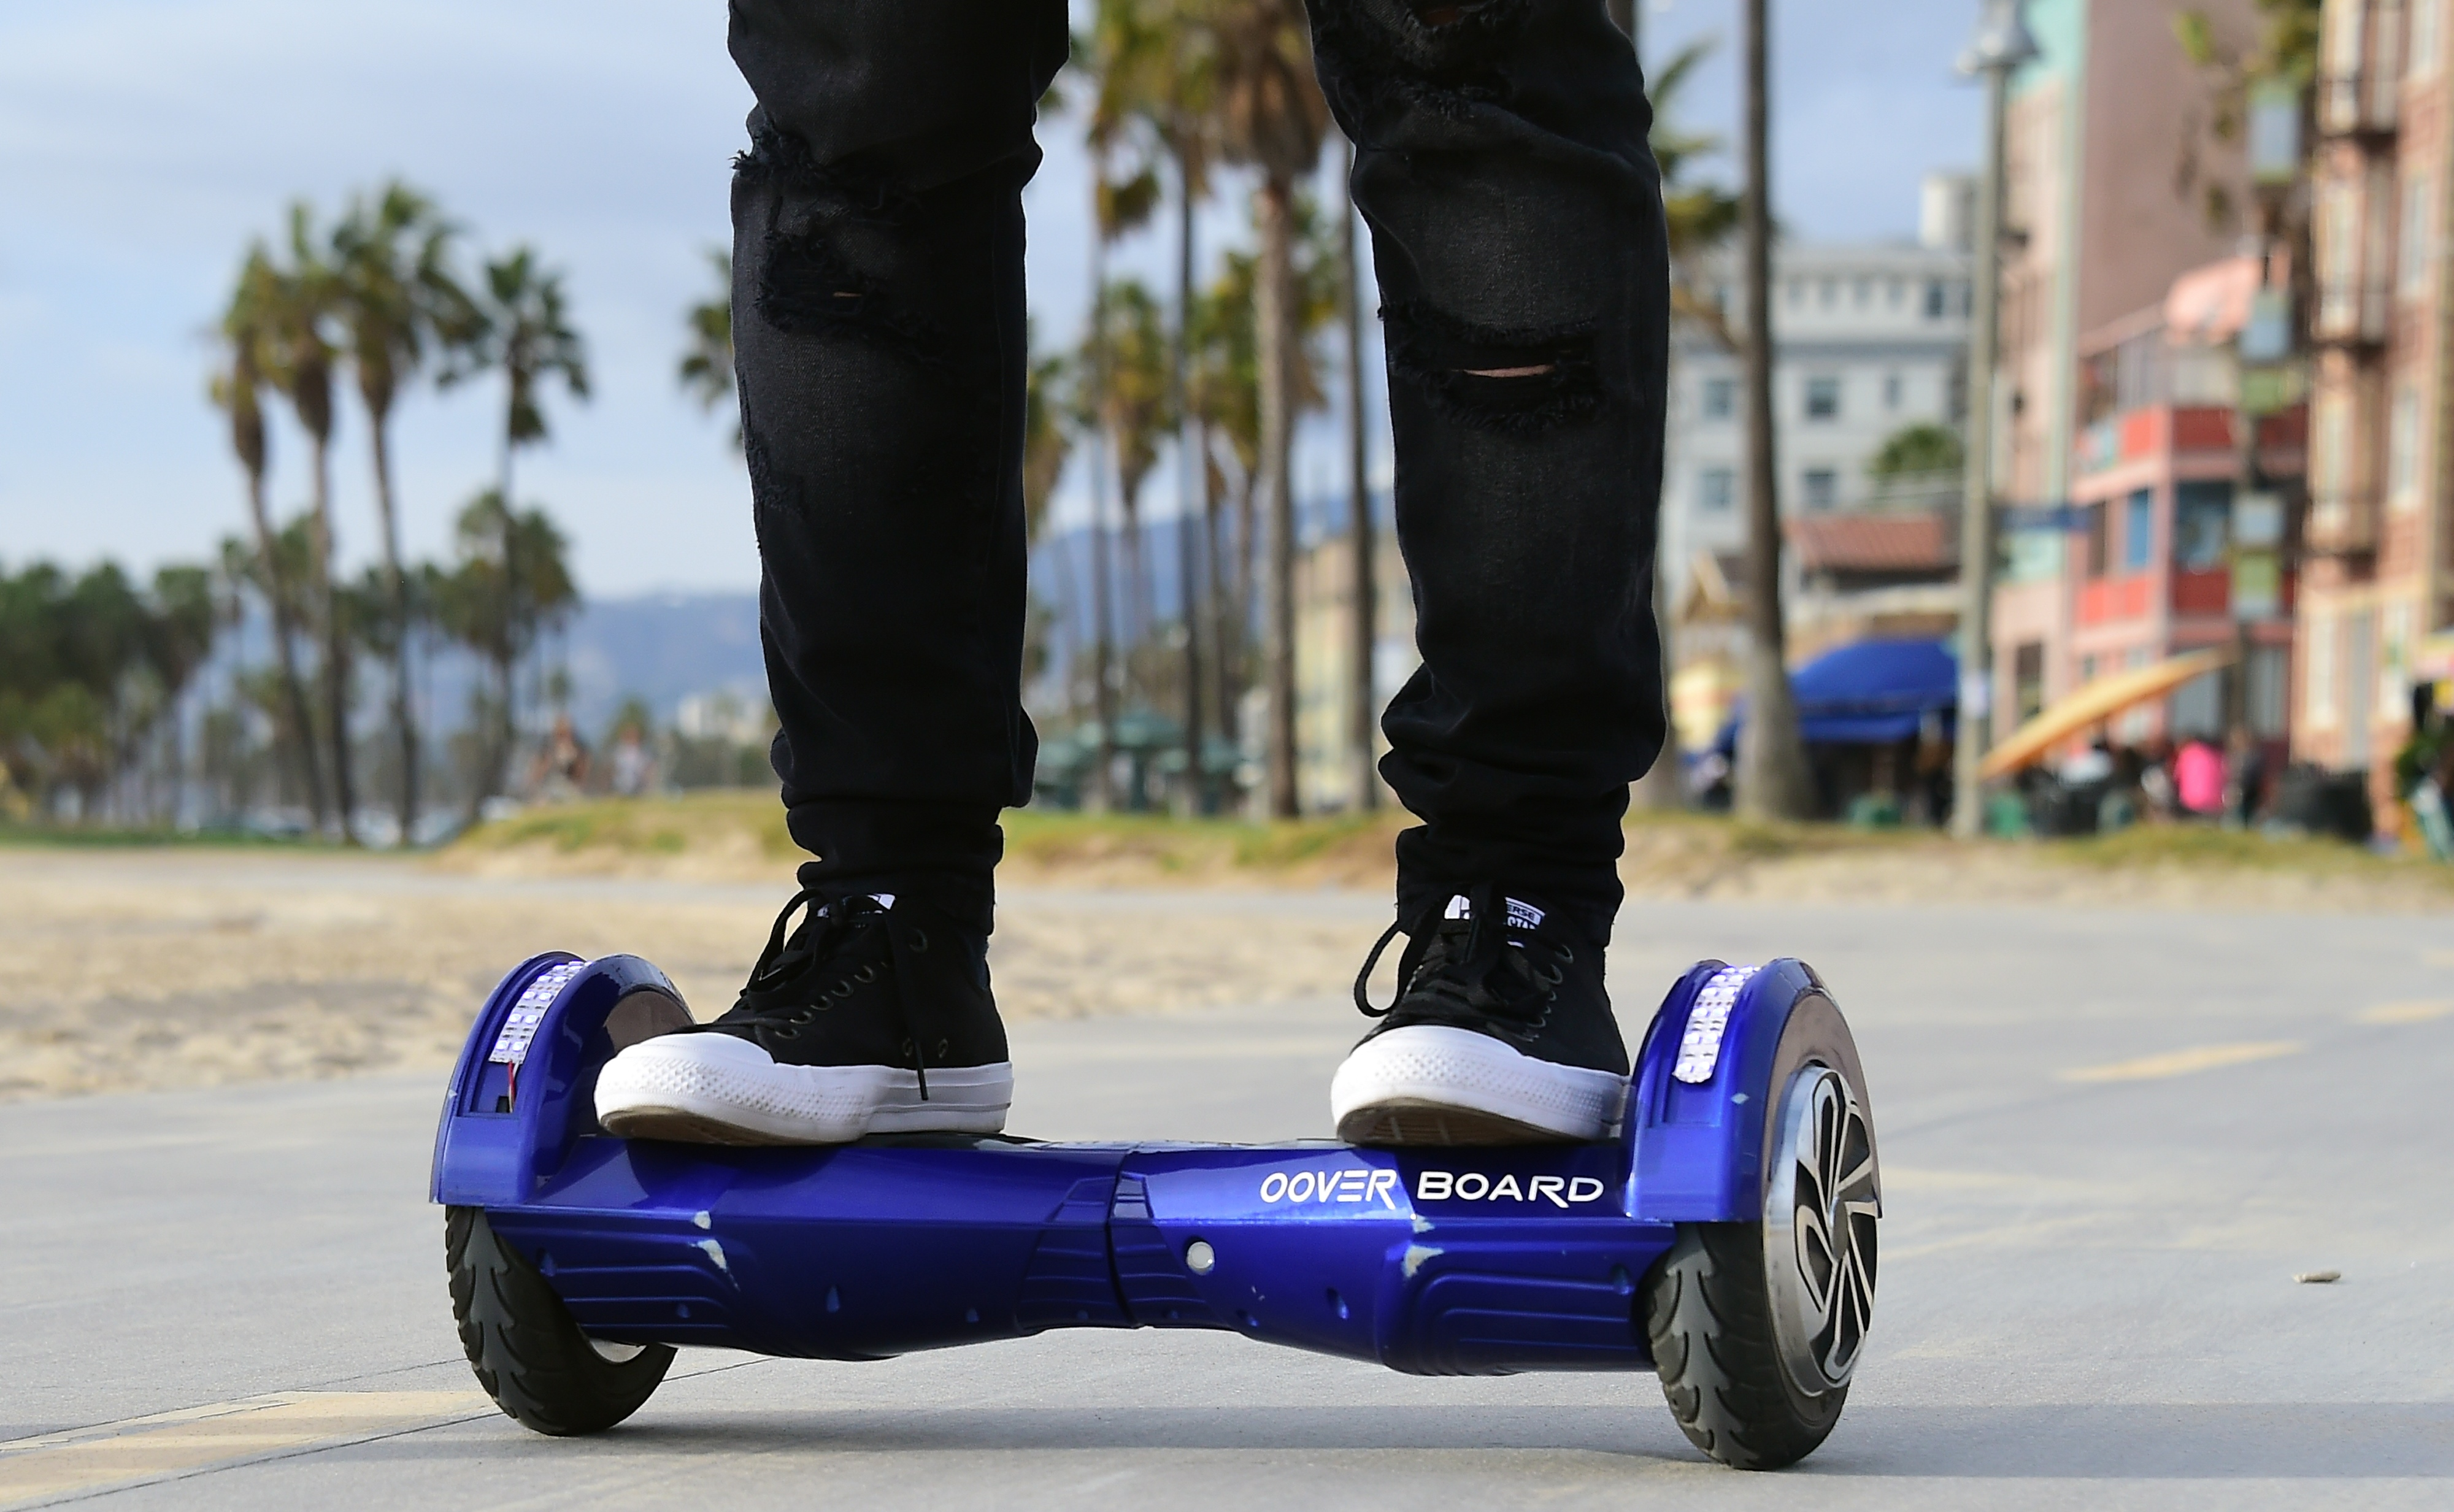 Michael Tran uses his hoverboard on the Venice Beach Boardwalk on December 10, 2015.